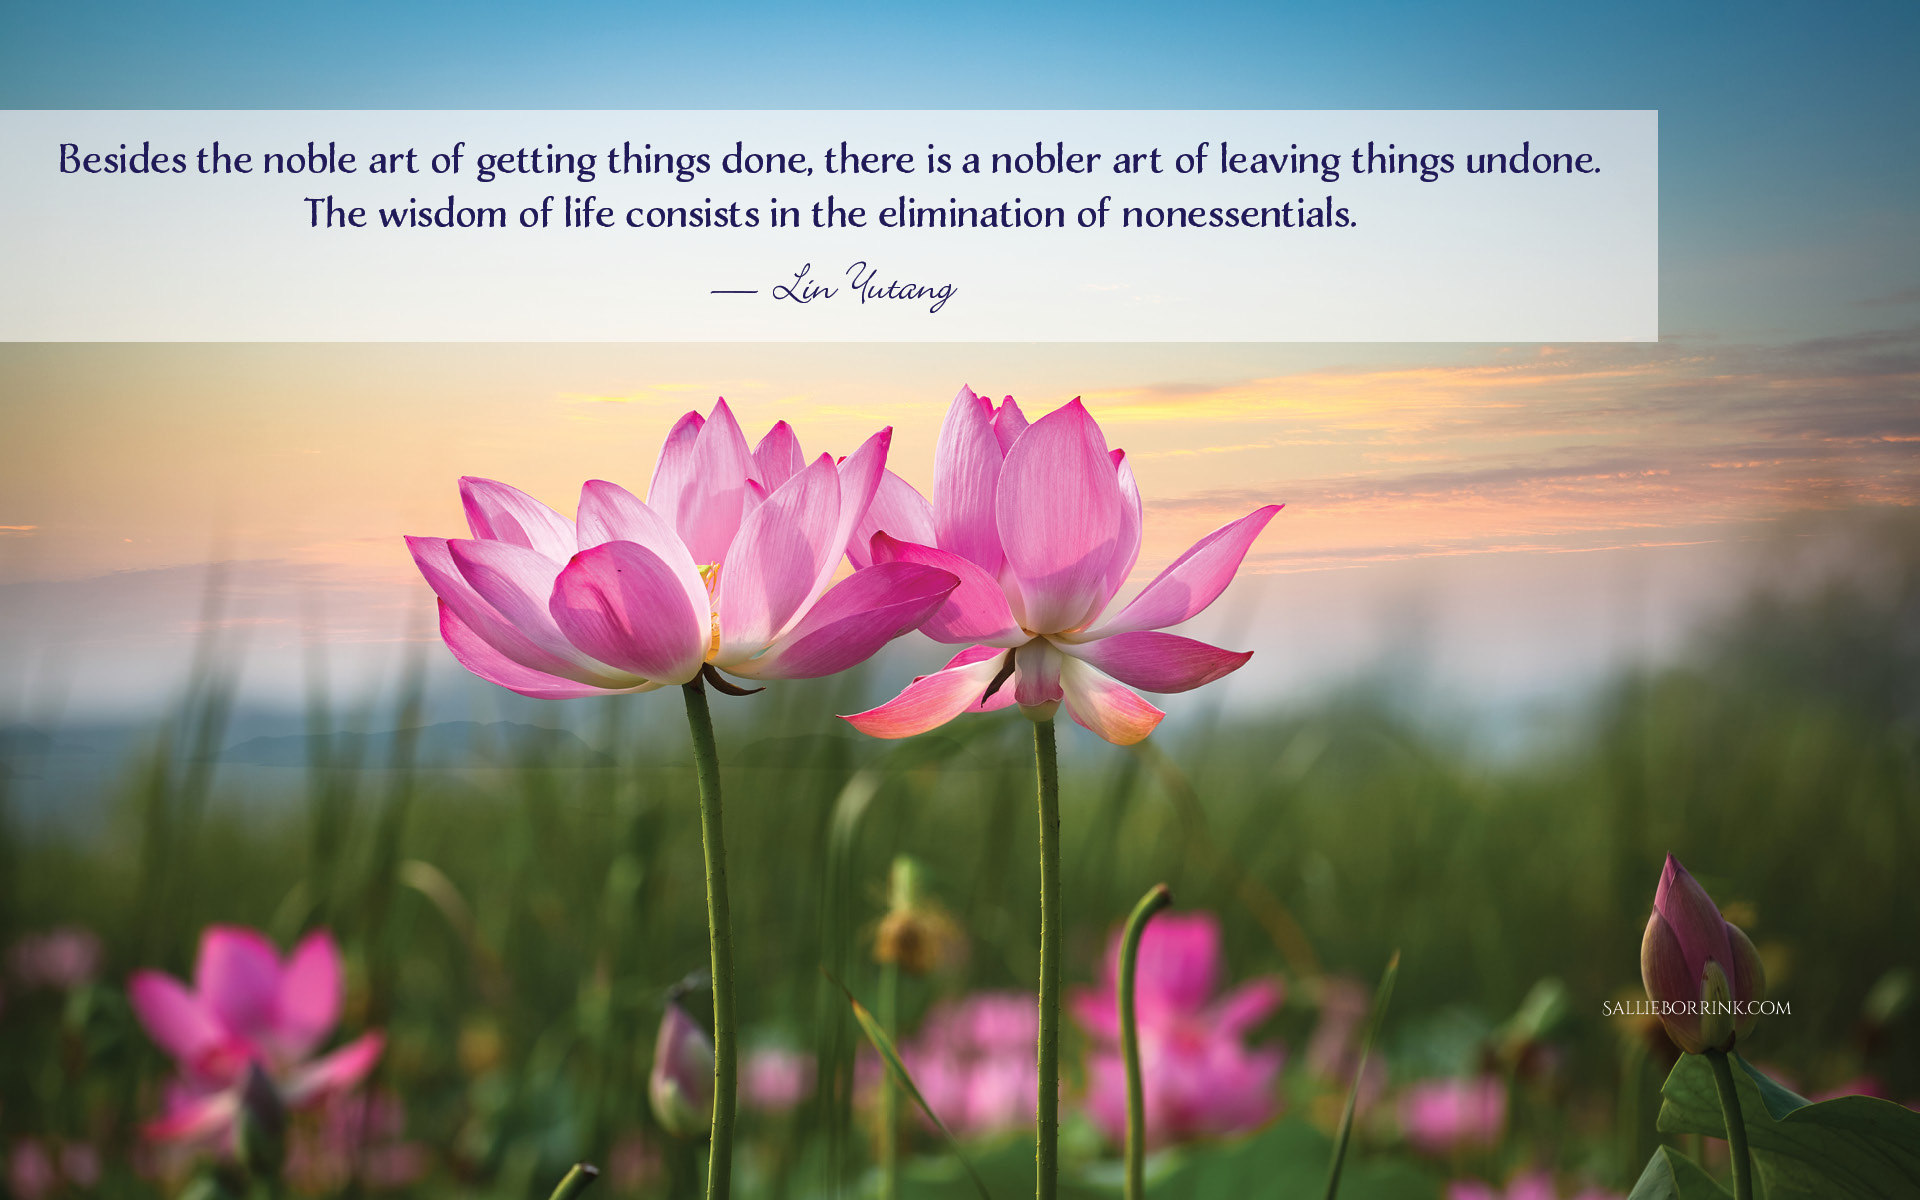 Besides the noble art of getting things done, there is a nobler art of leaving things undone. The wisdom of life consists in the elimination of nonessentials. — Lin Yutang